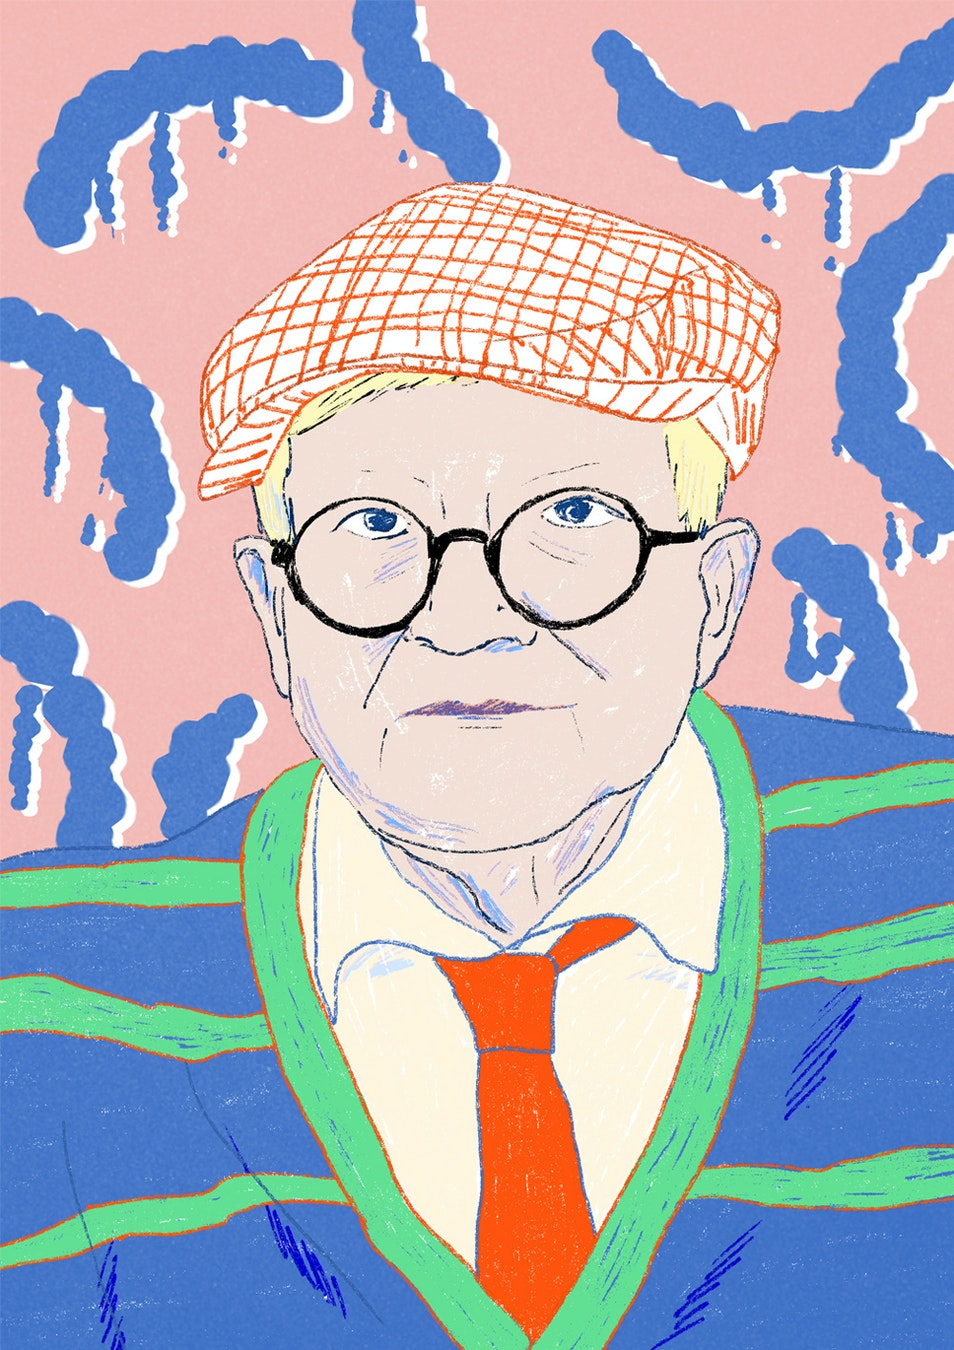 Milica_Golubovic_David_Hockney